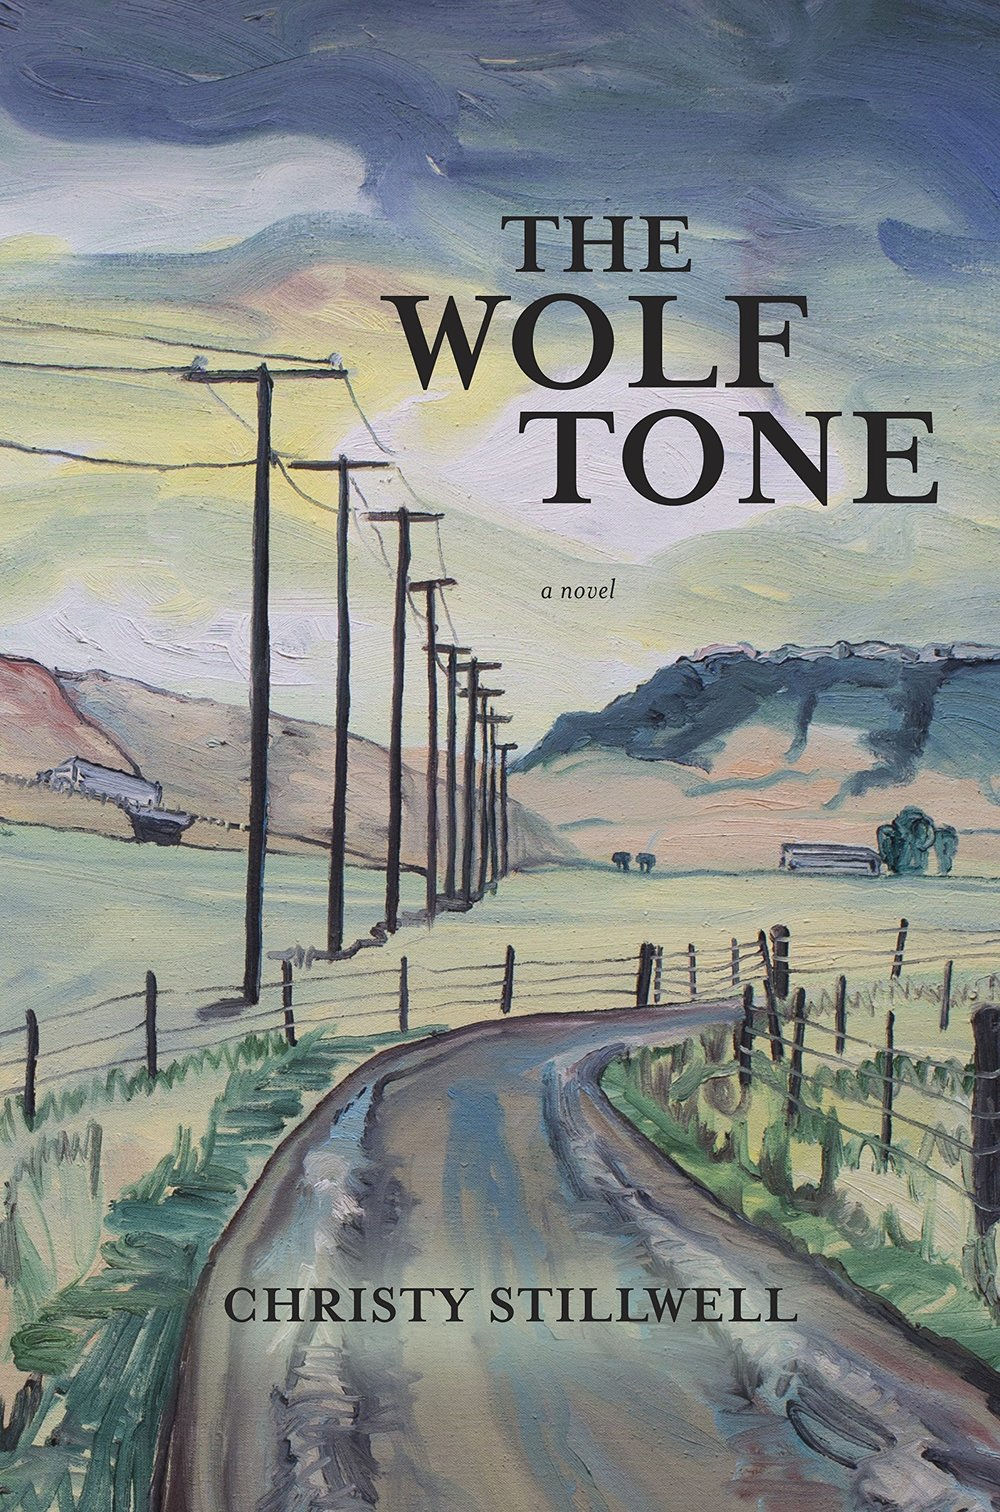 the wolf tone by christy stillwell.jpg